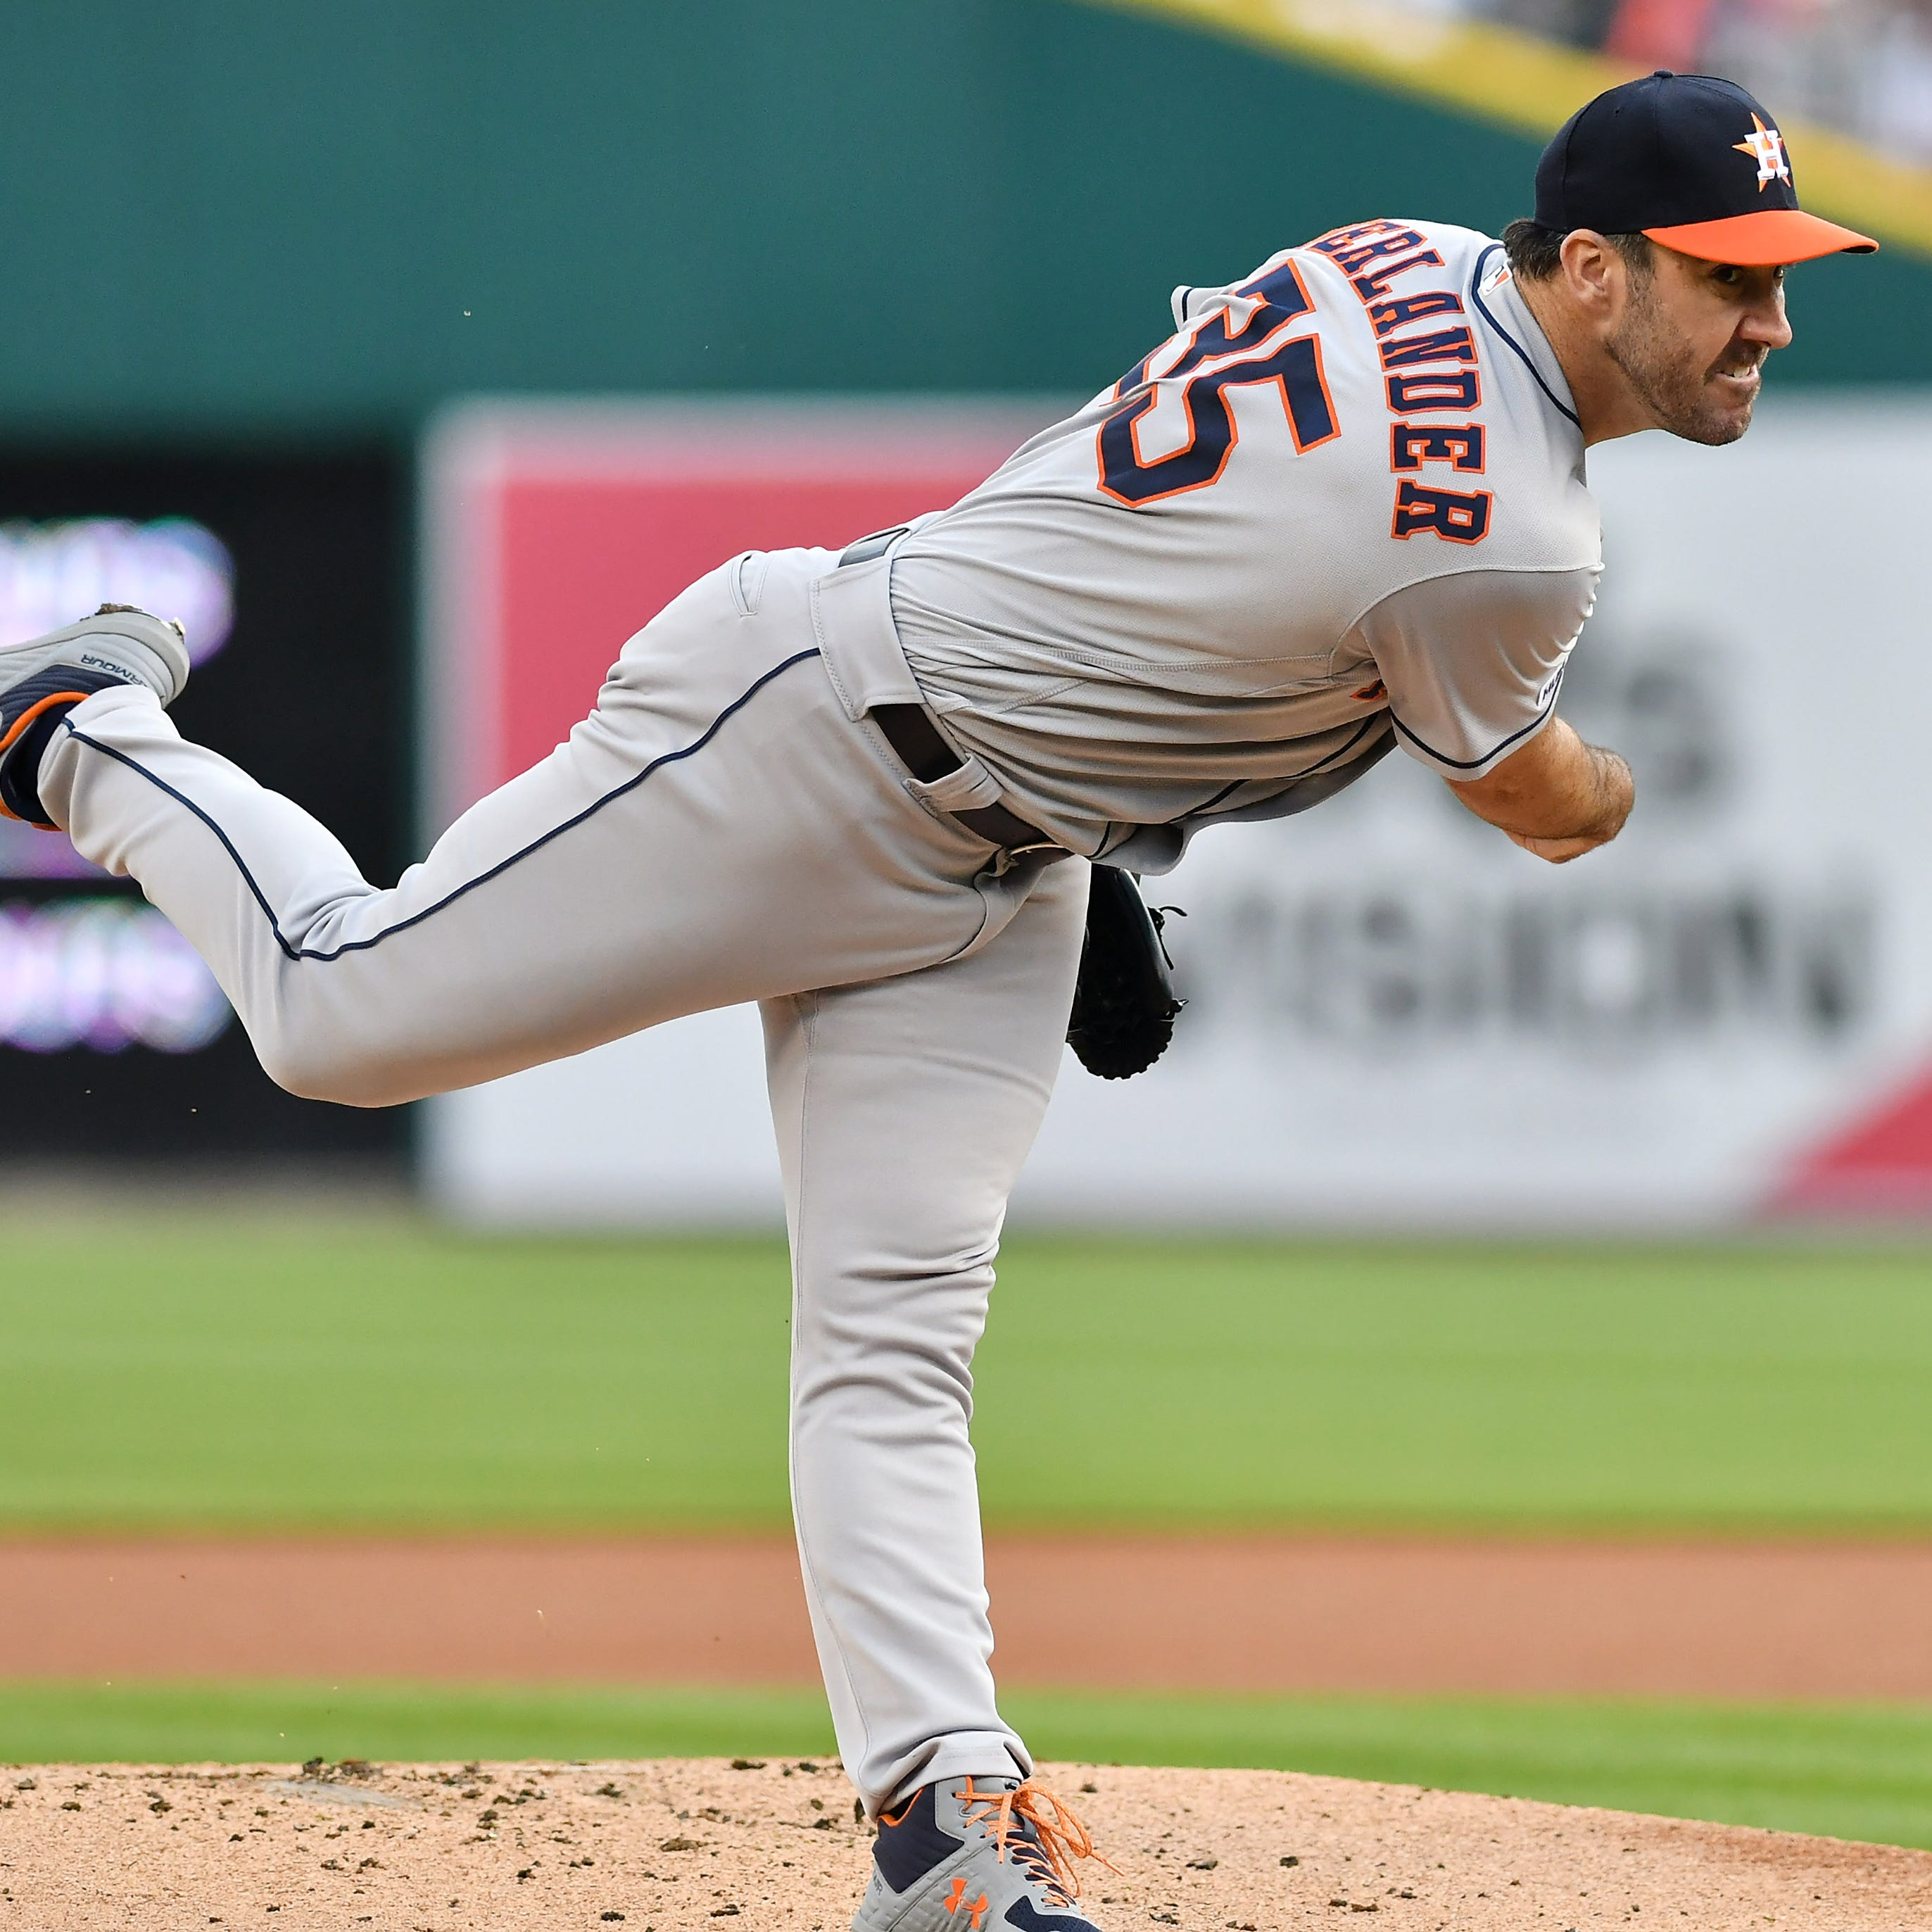 Just like old times: Verlander beats Tigers for 99th win at Comerica Park